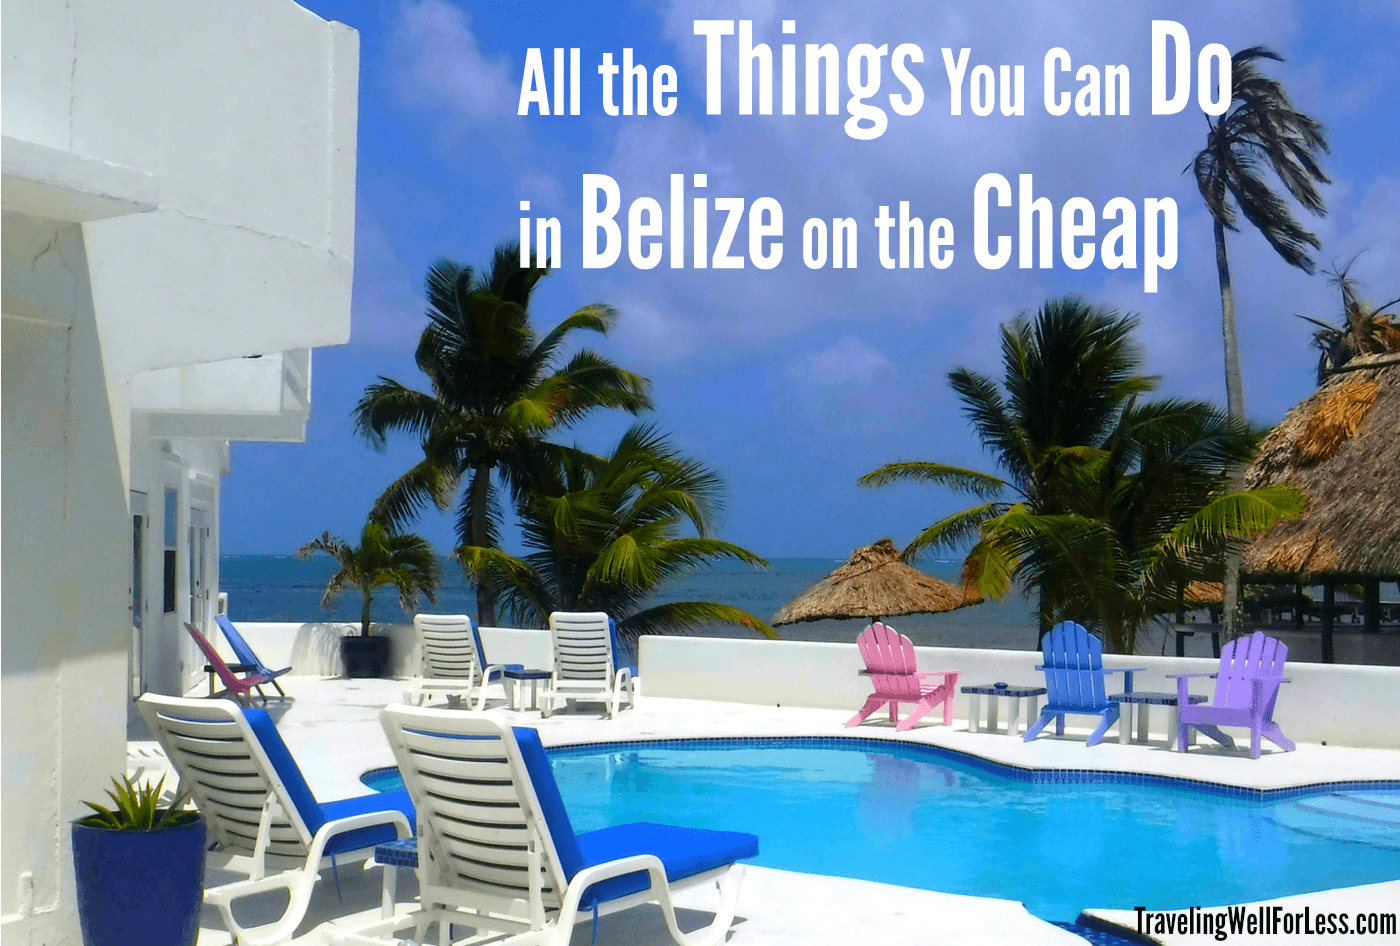 A Belize vacation doesn't have to be expensive. Travel expert Debra Schroeder shares all the things you can do in Belize on the cheap. | Belize | Central America | cheap travel | budget travel | family travel | Traveling Well For Less